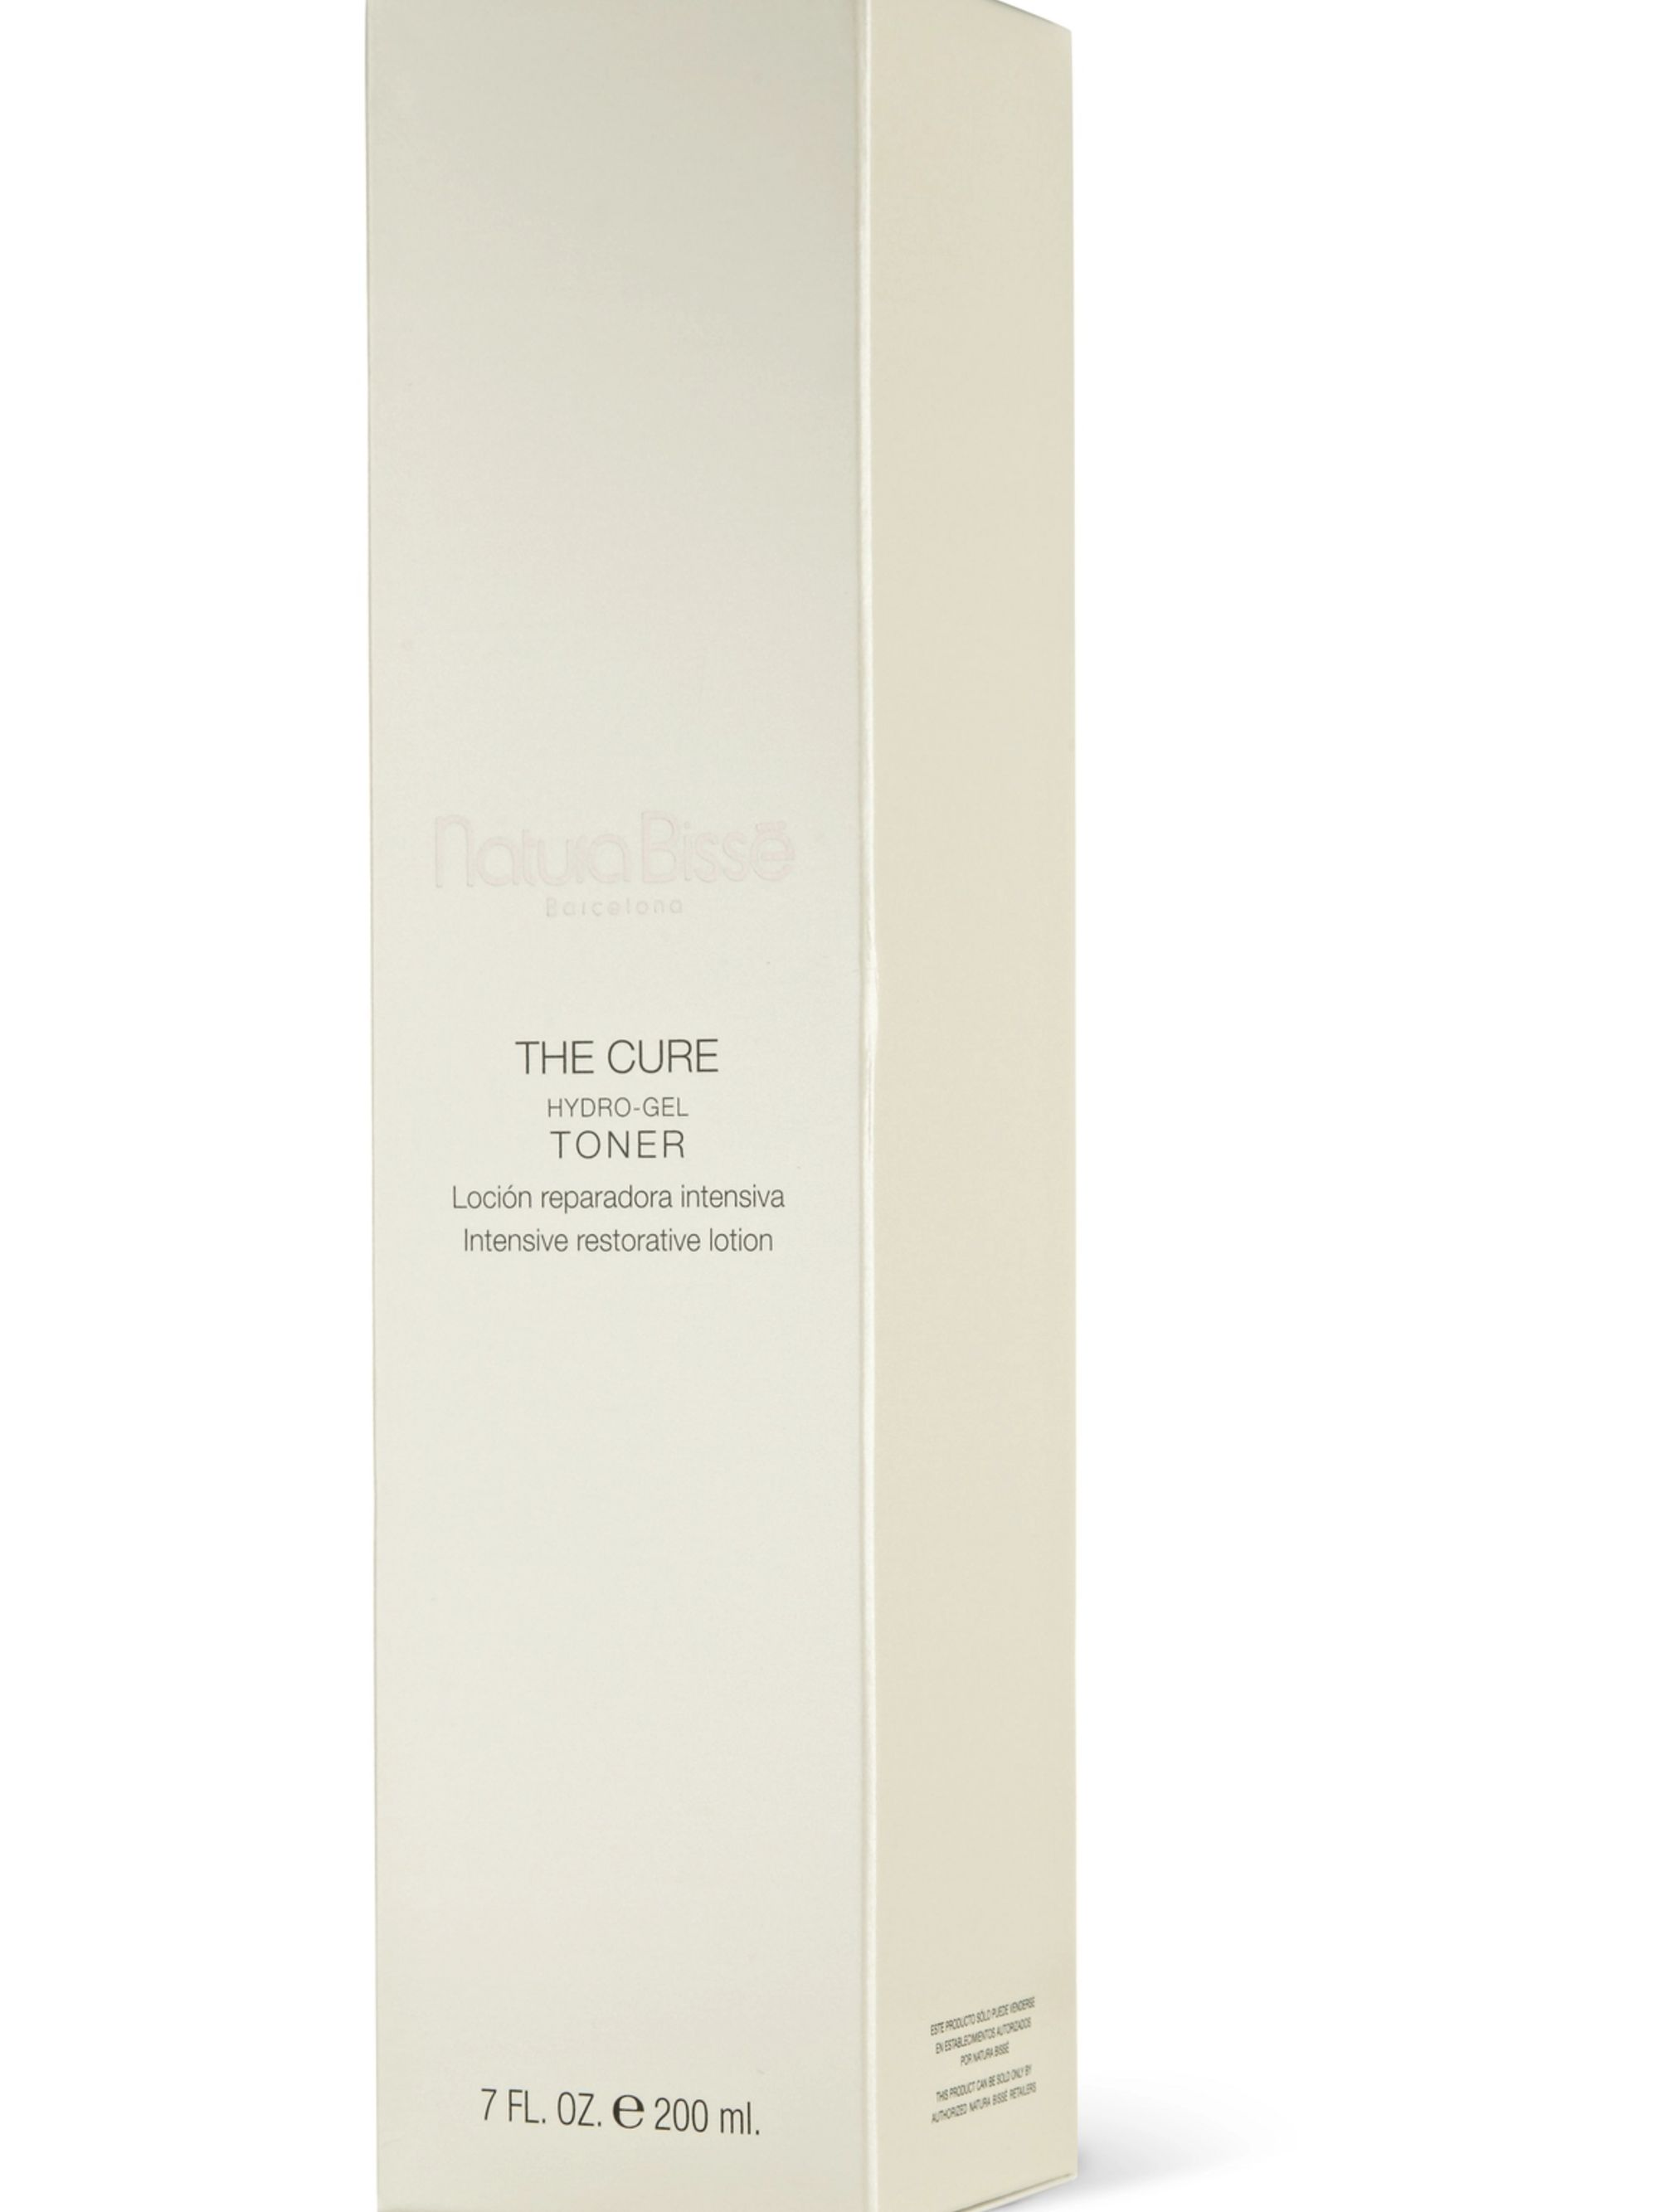 Natura Bissé The Cure Hydro-Gel Toner, 200ml